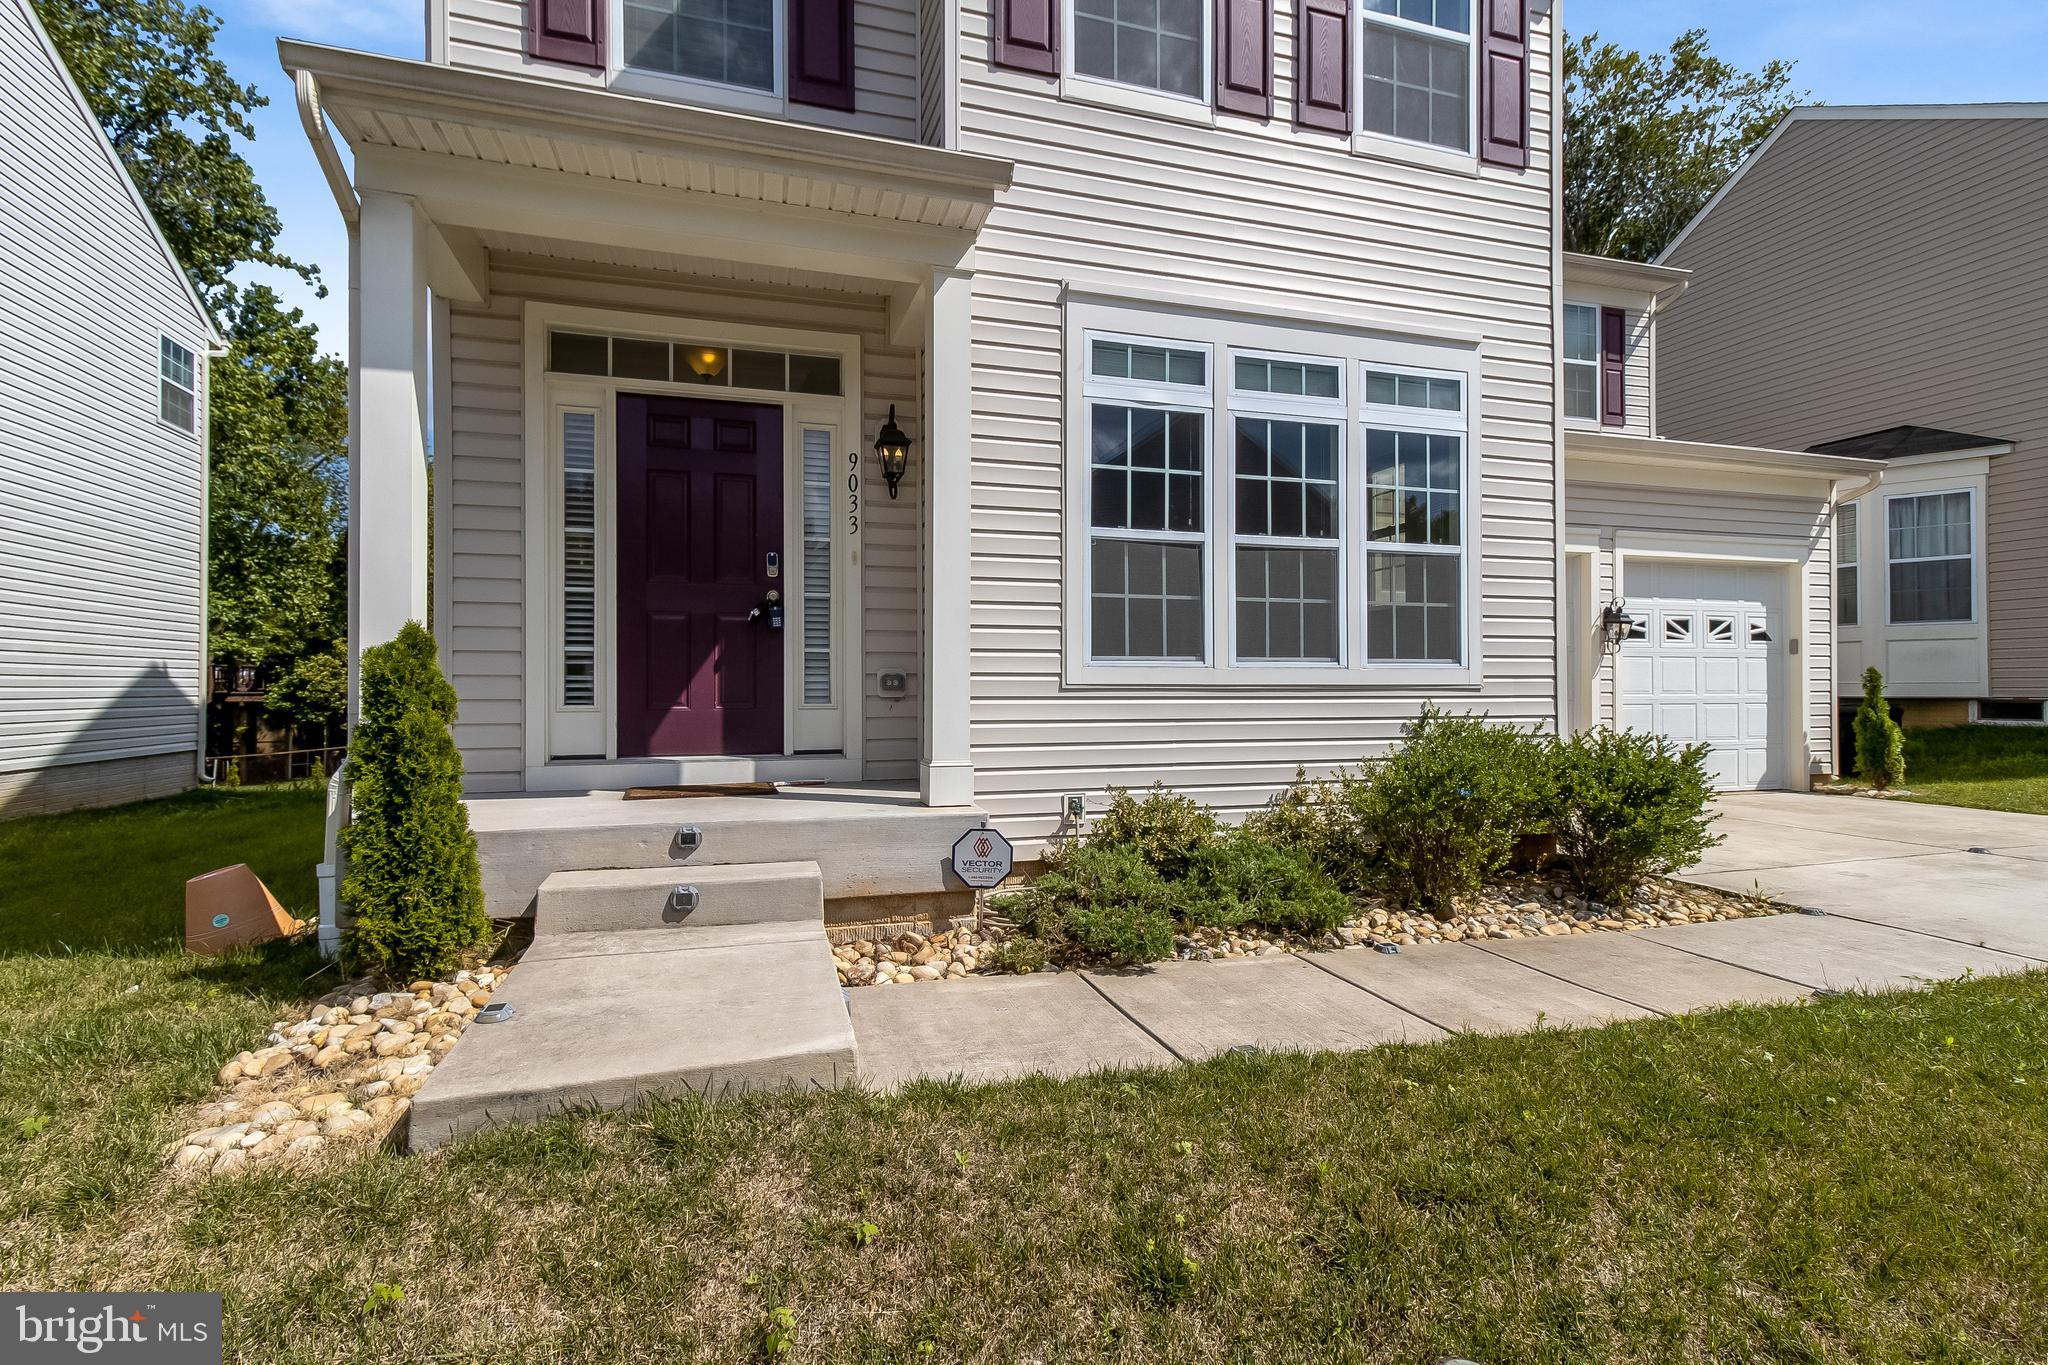 9033 MELODY DRIVE, LAUREL, MD 20723